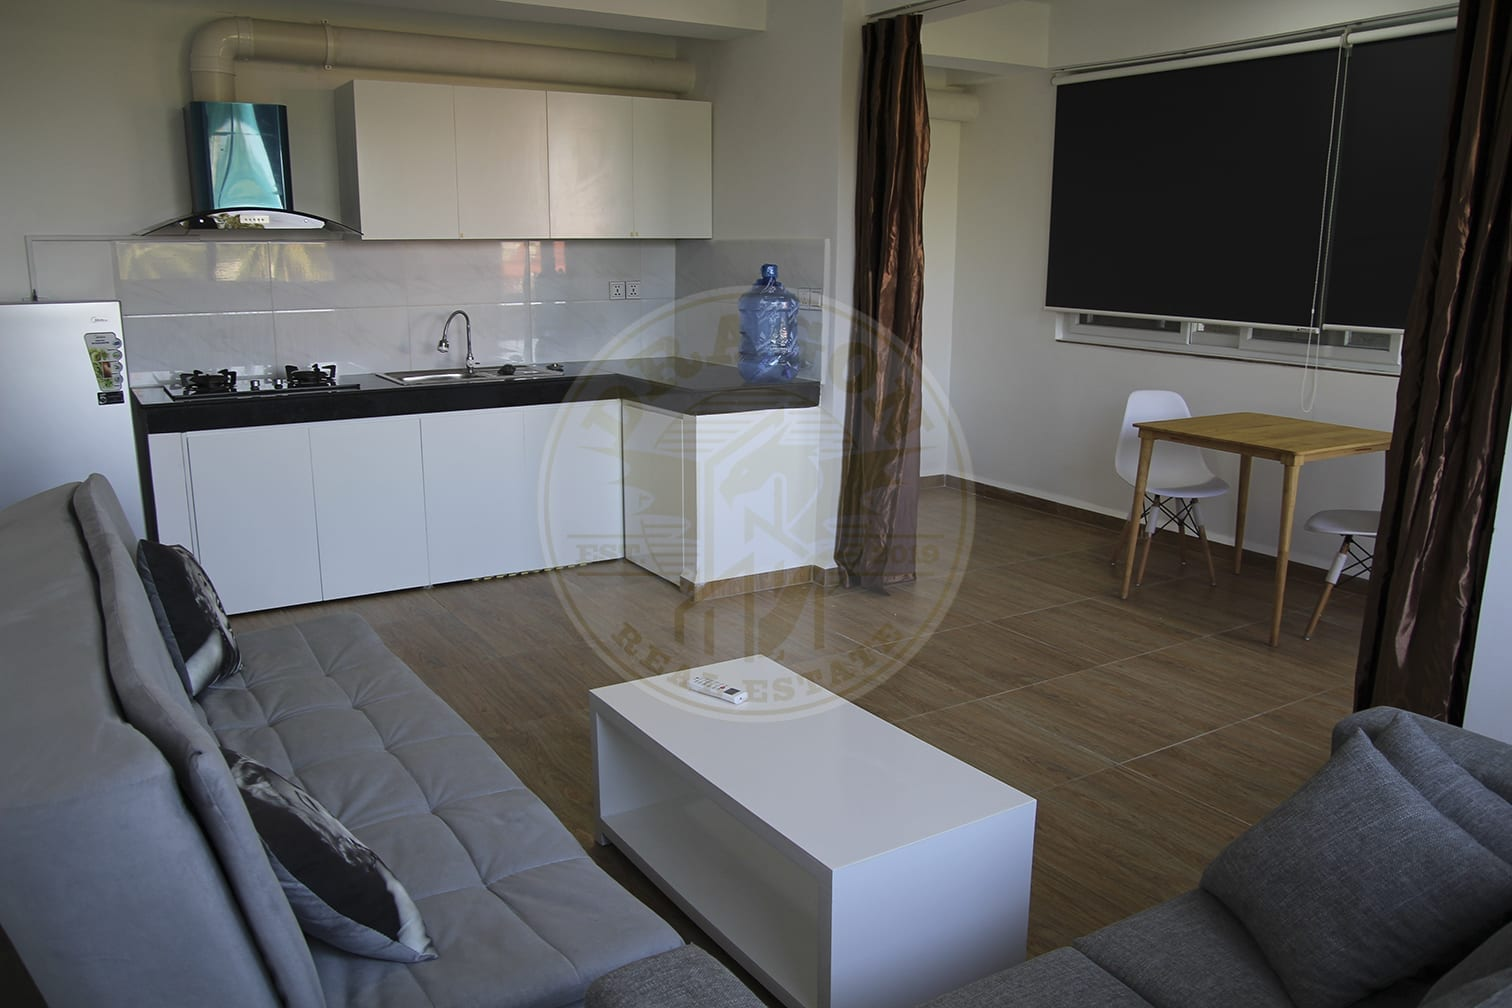 Unique and very Upscale Apartment in Sihanoukville. Sihanoukville Cambodia Property Sale